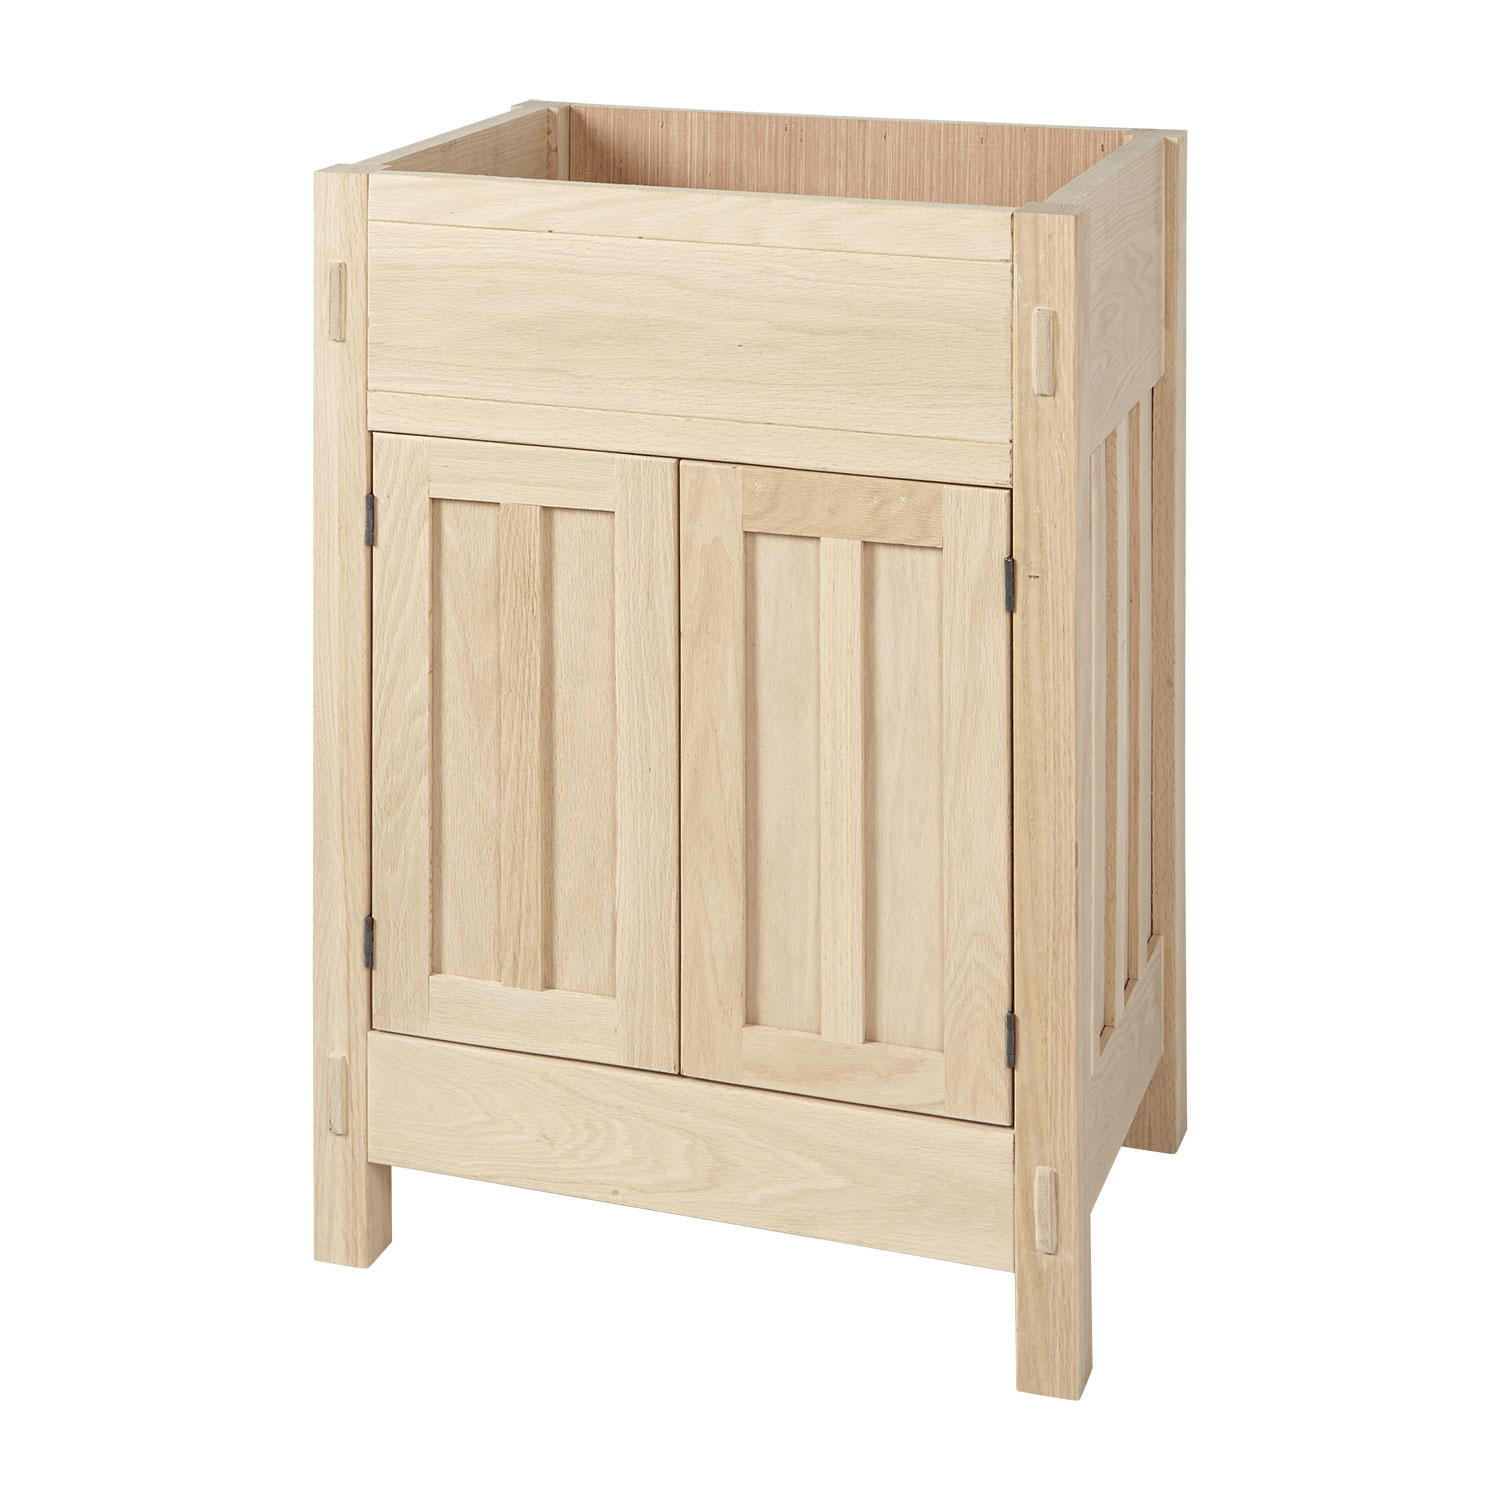 All about bathroom vanity base cabinet unfinished for Bathroom vanities and cabinets